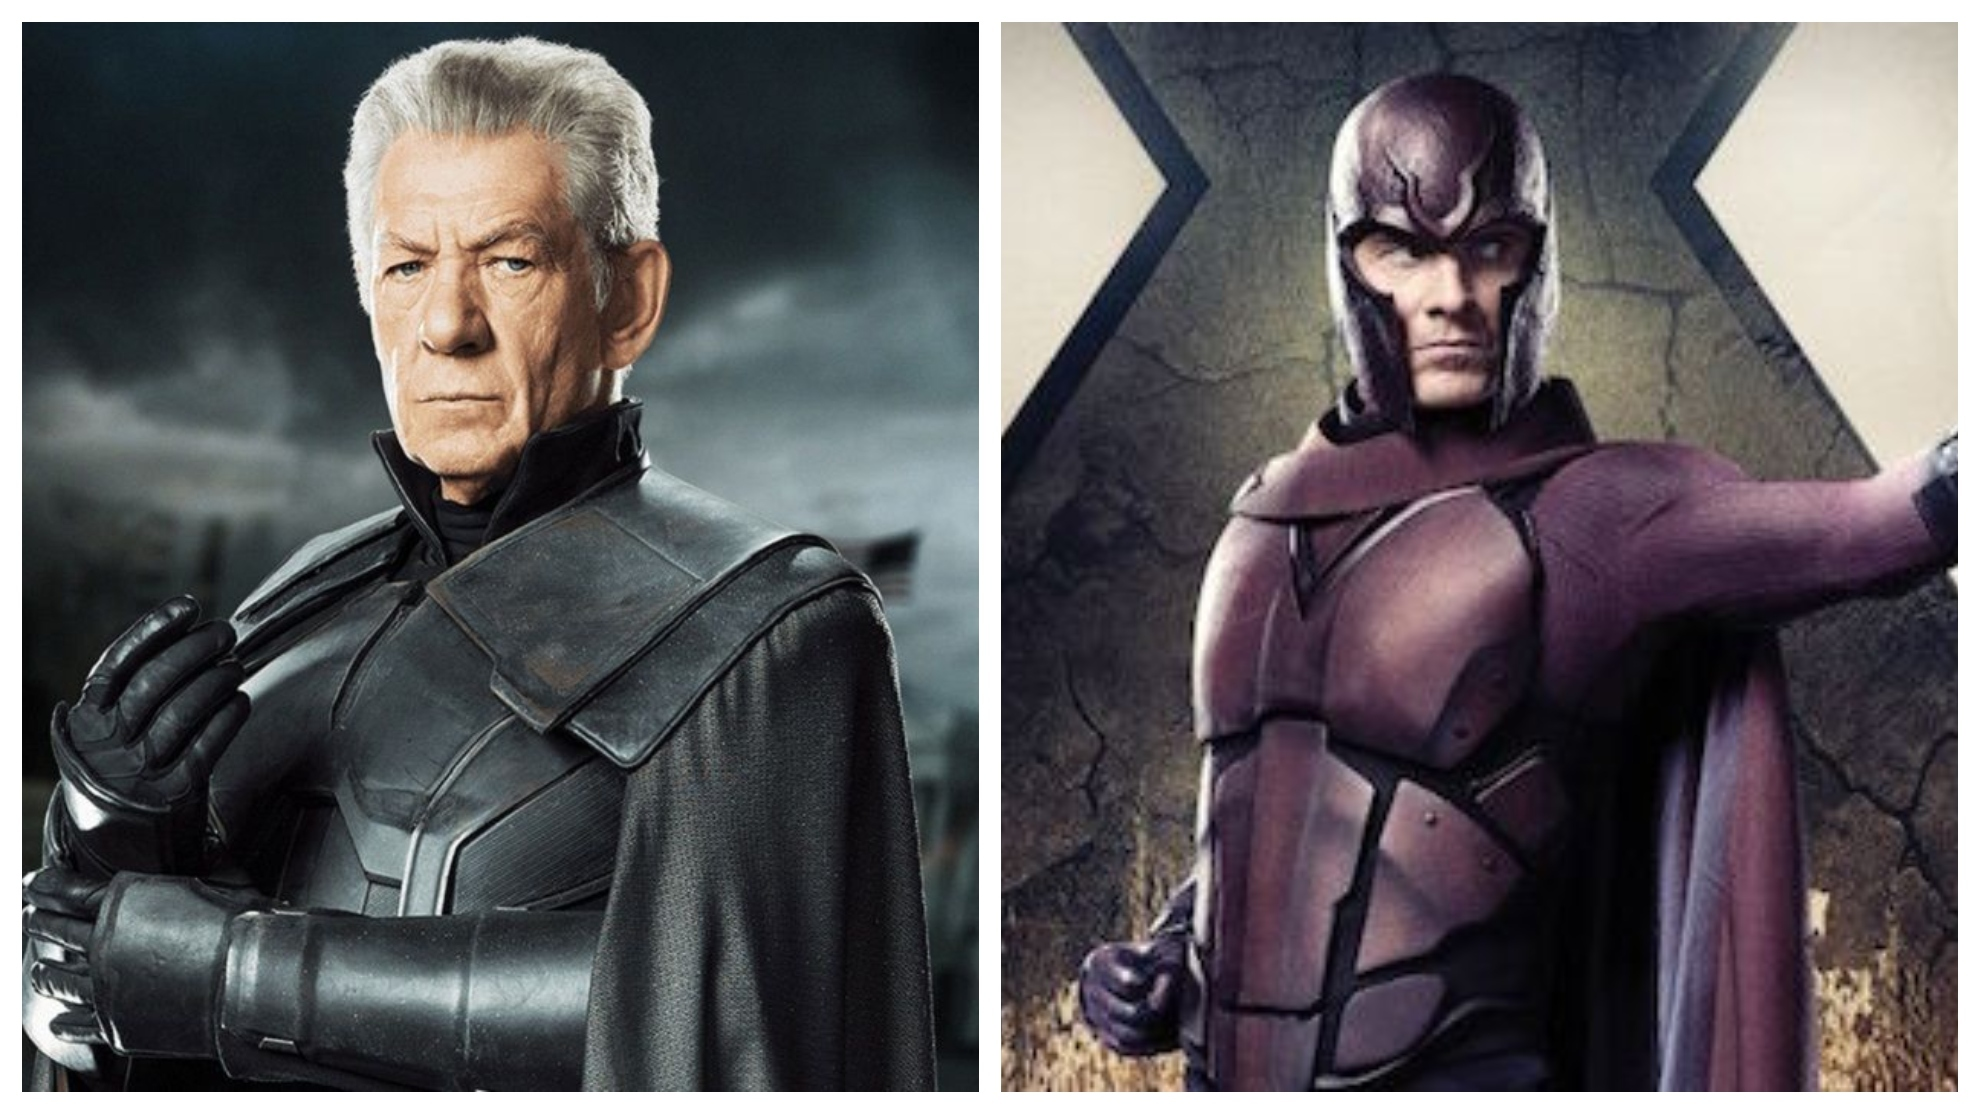 Ian Mckellen and Michael Fassbender, in the role of Magneto.